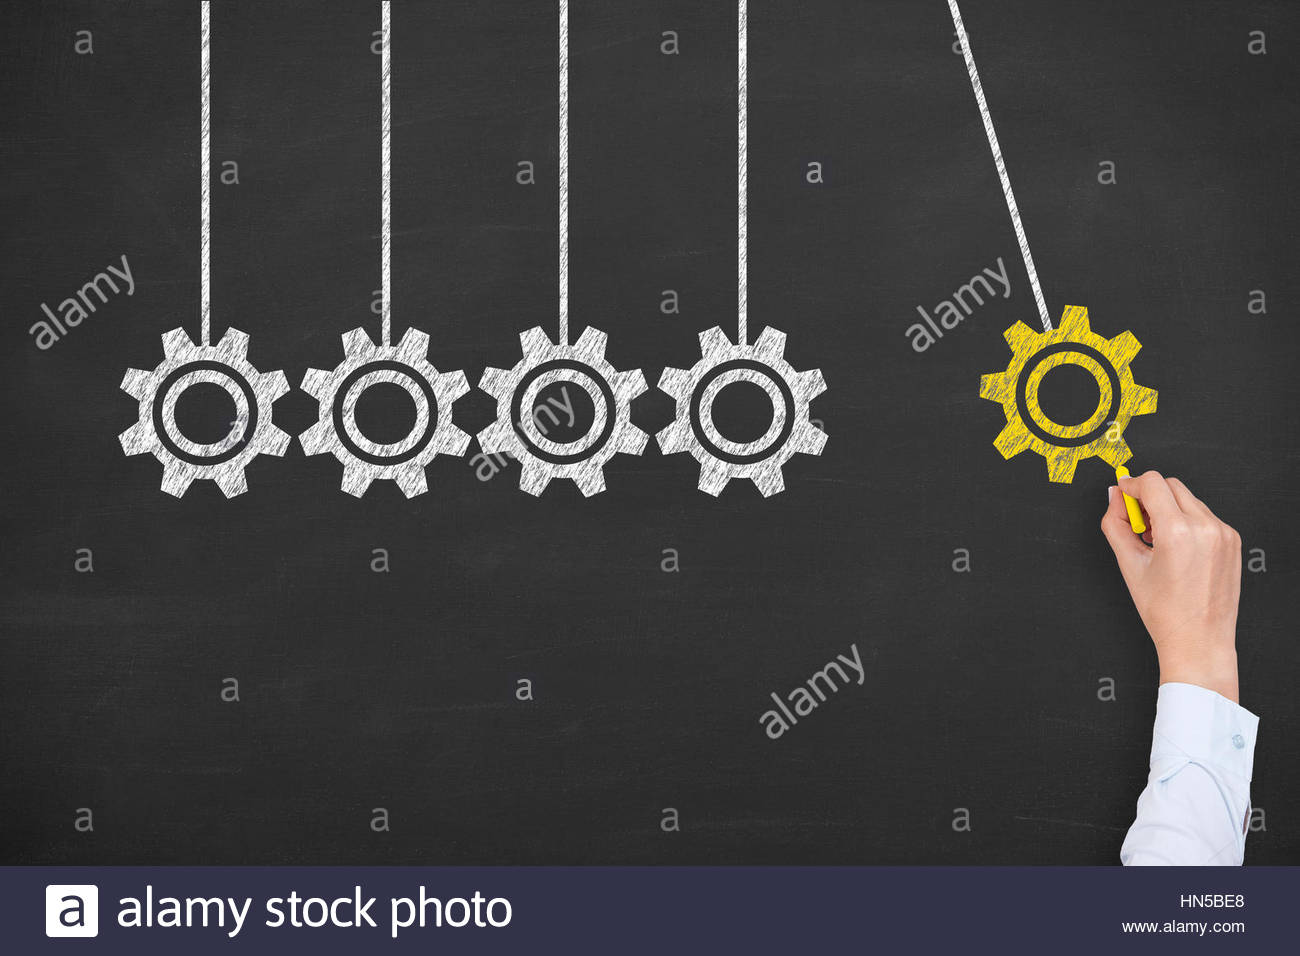 Service Concepts on Blackboard Background - Stock Image